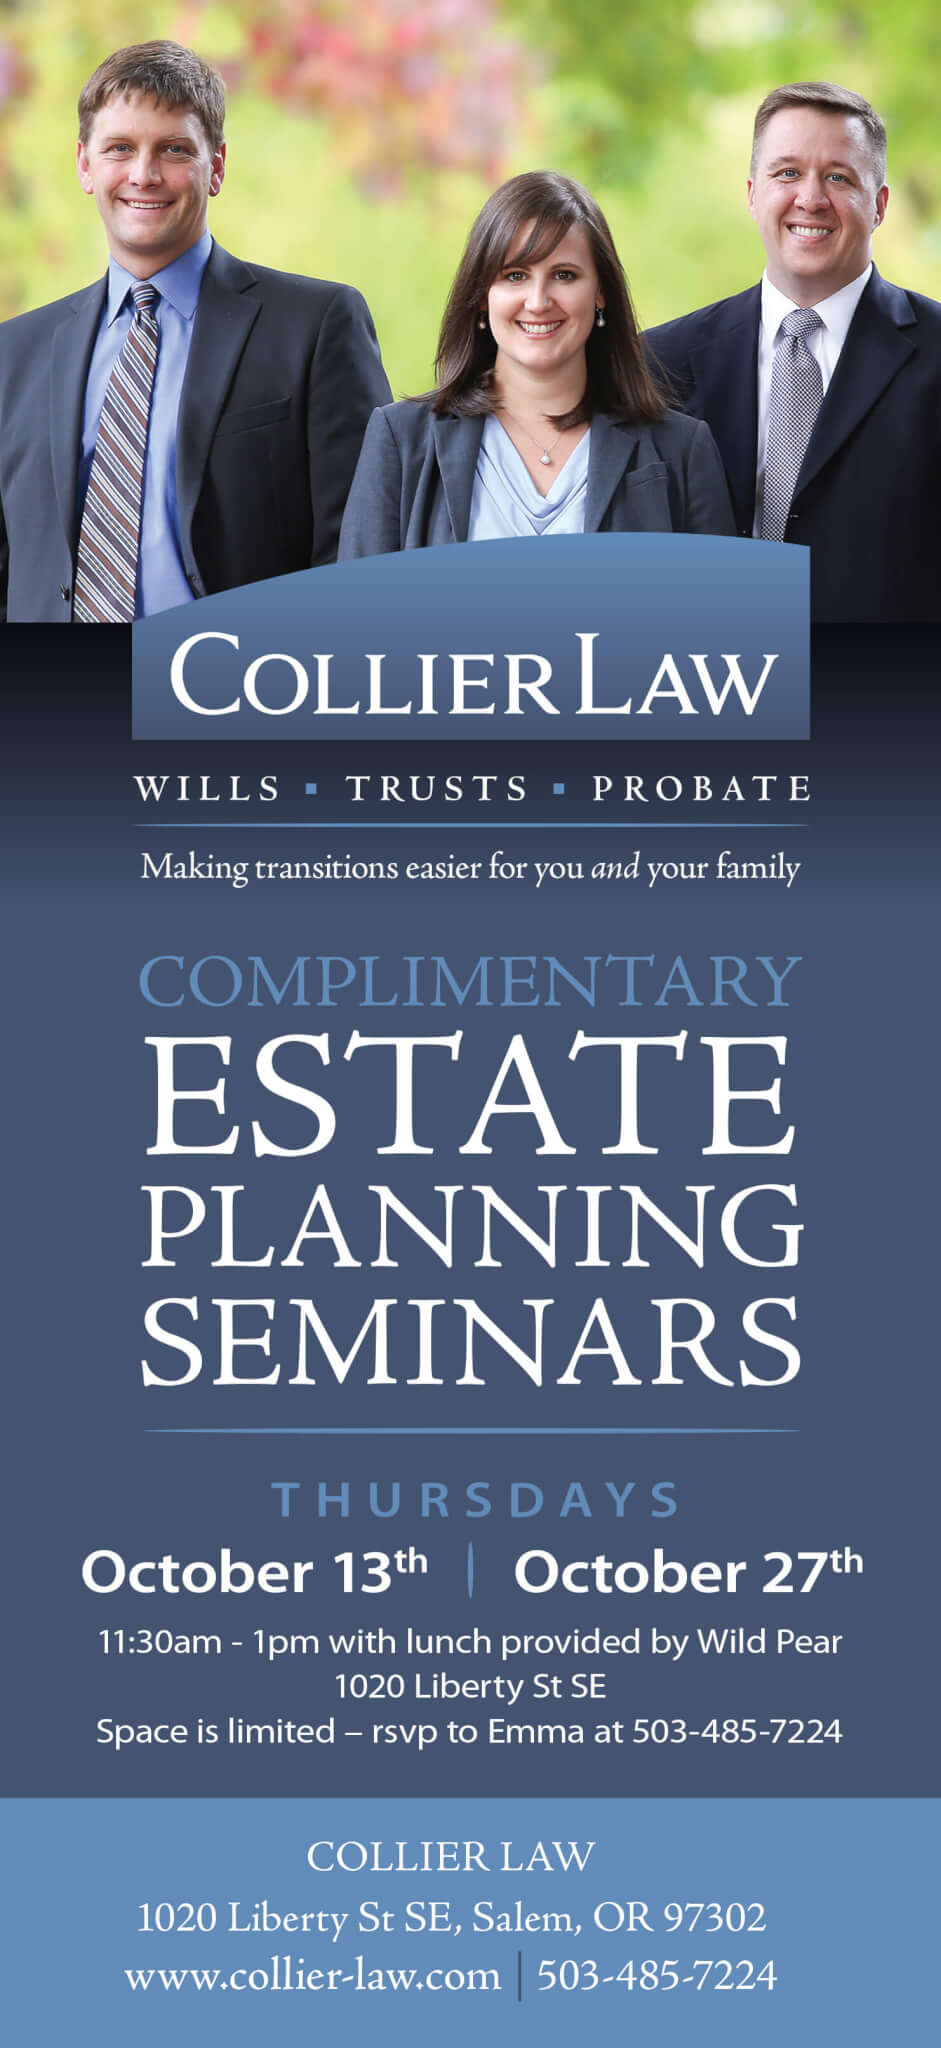 Ad Design In House Graphics Salem Oregon - Collier Law